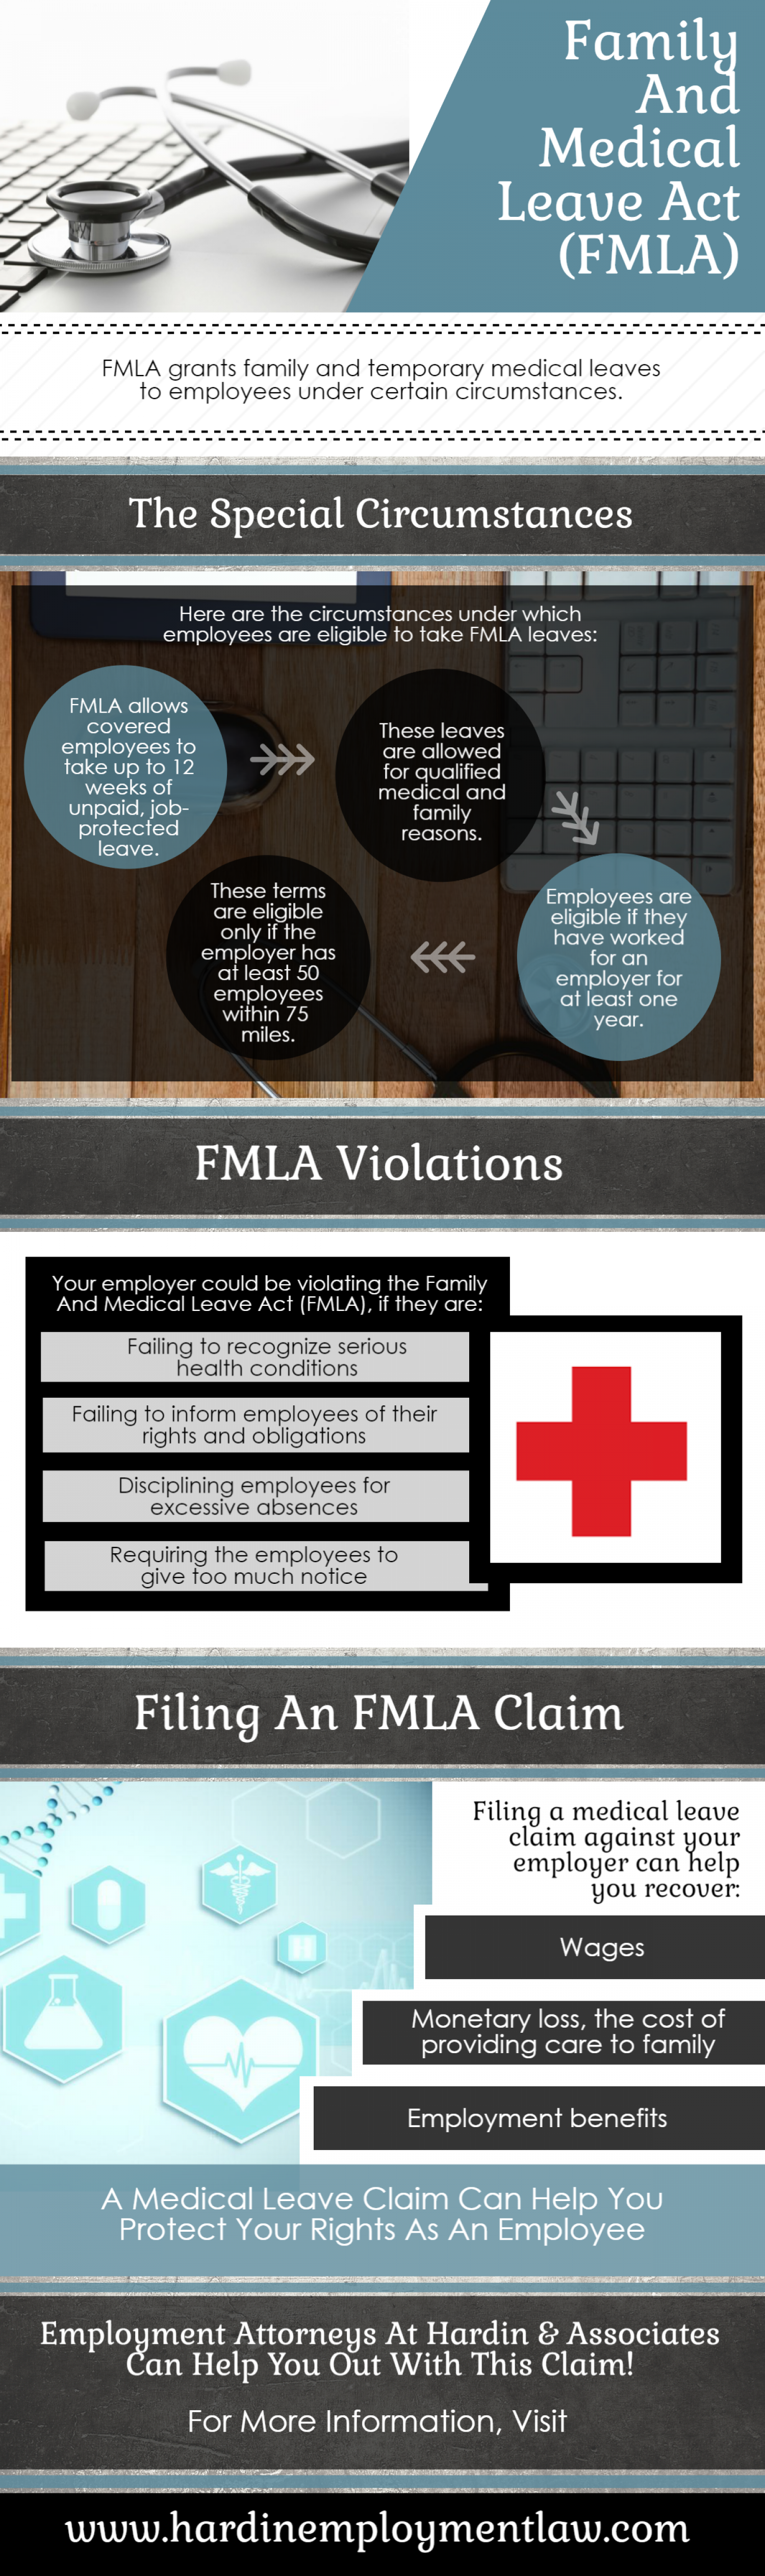 Family And Medical Leave Act (FMLA) Infographic